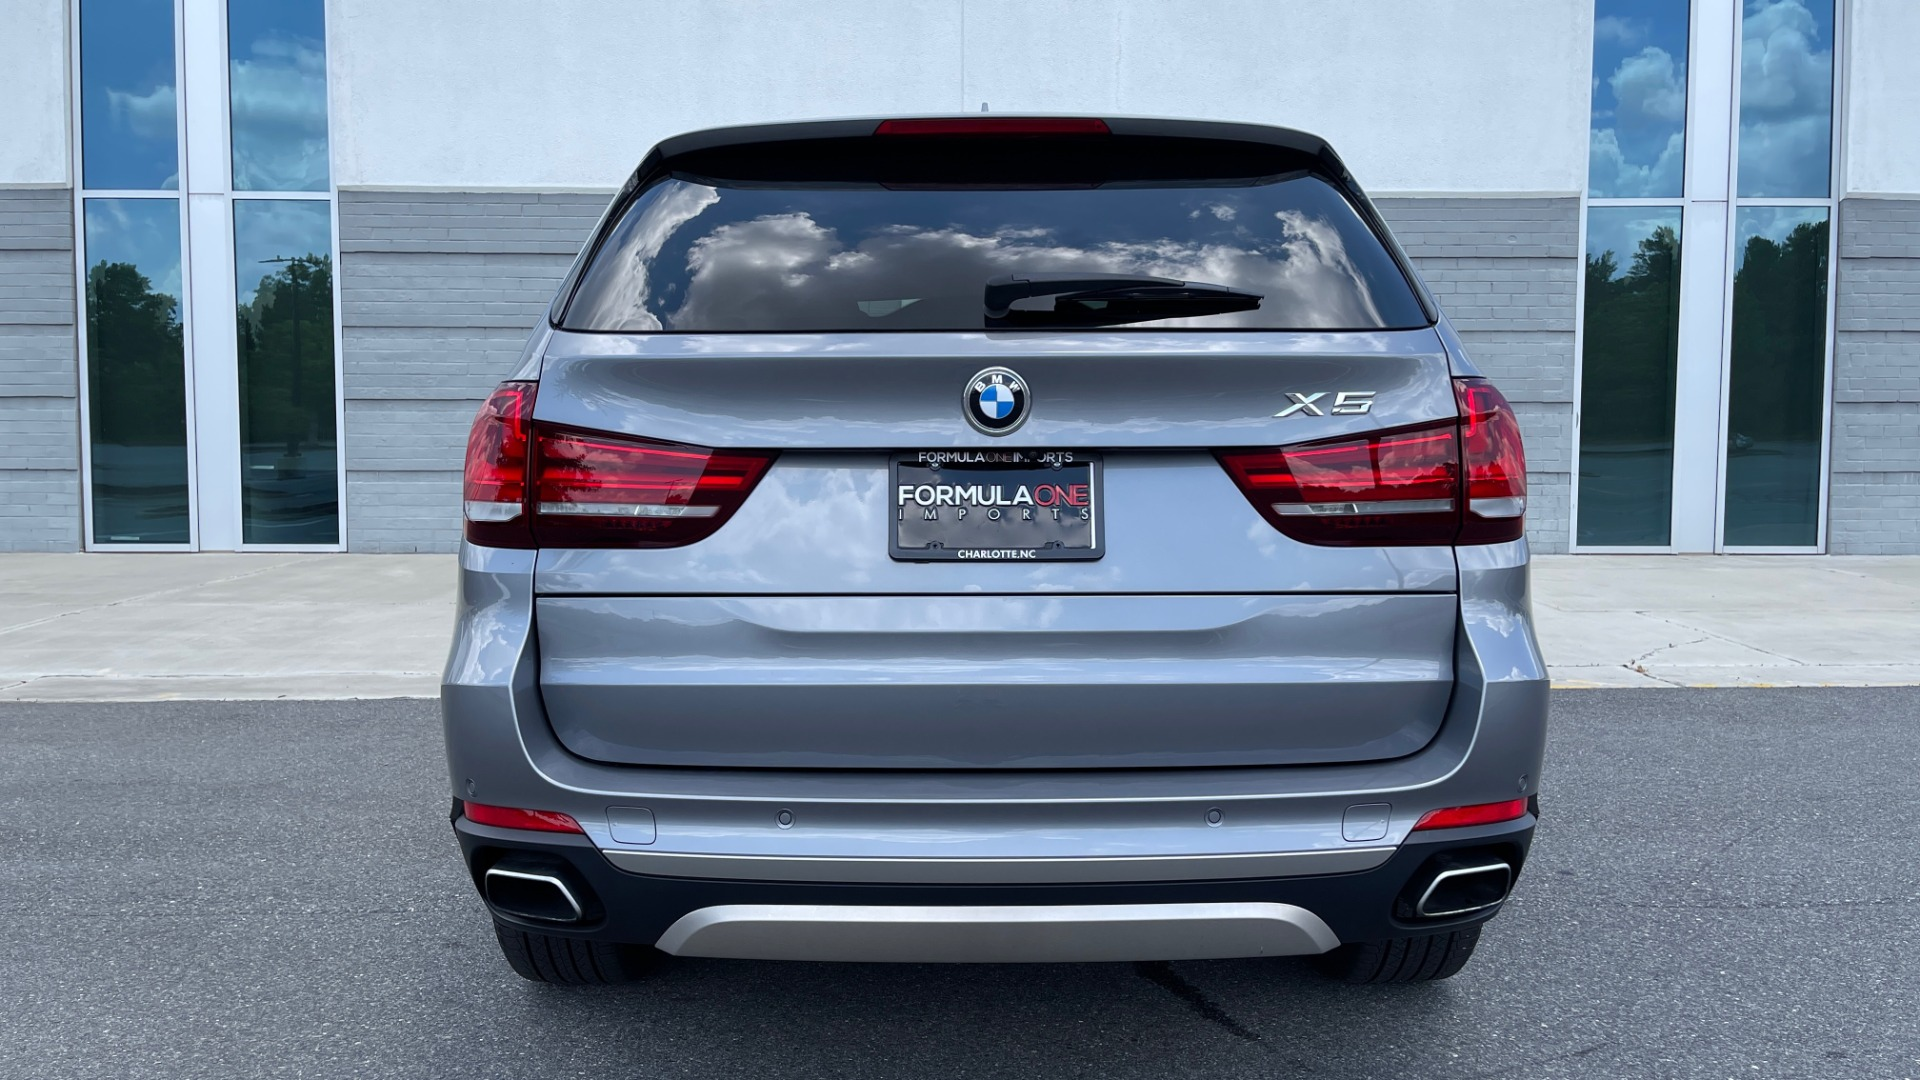 Used 2018 BMW X5 XDRIVE35I PREMIUM / DRVR ASST / WIRELESS CHARGING / CAMERAS for sale $46,995 at Formula Imports in Charlotte NC 28227 29